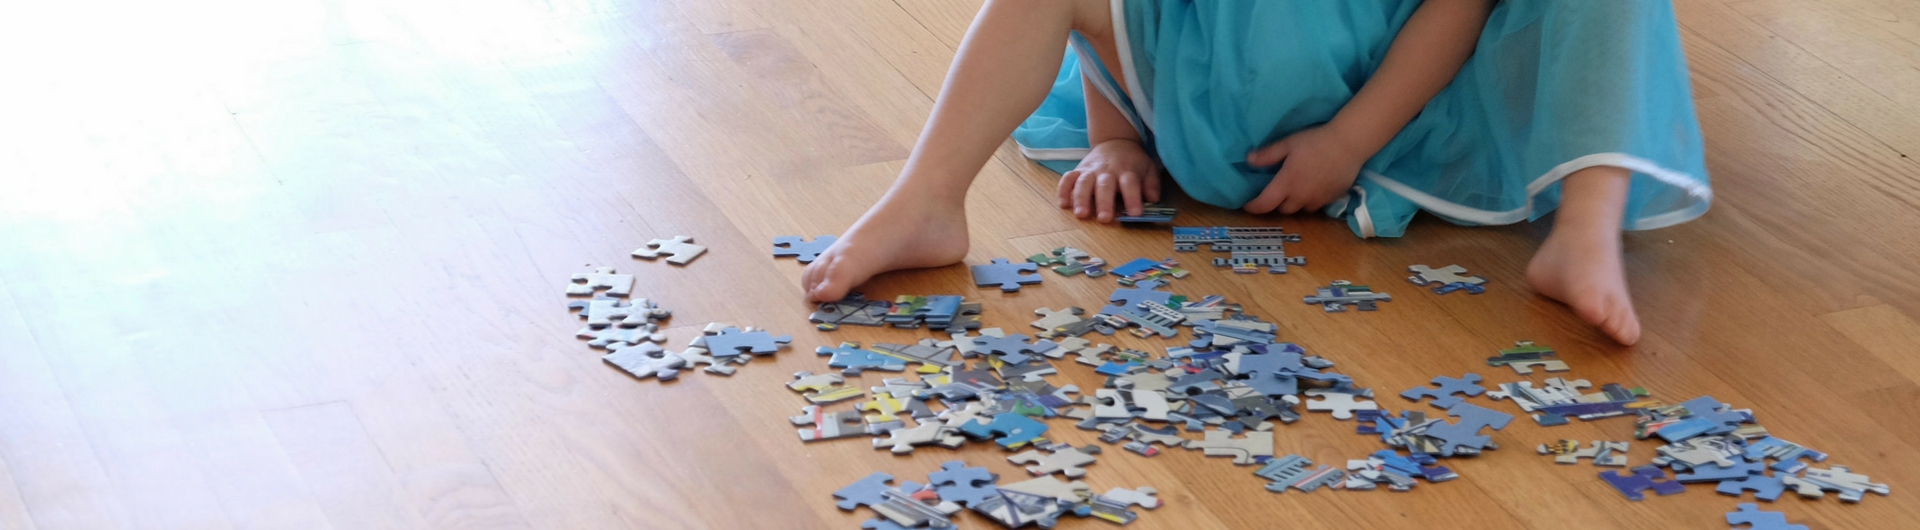 child-playing-with-puzzle